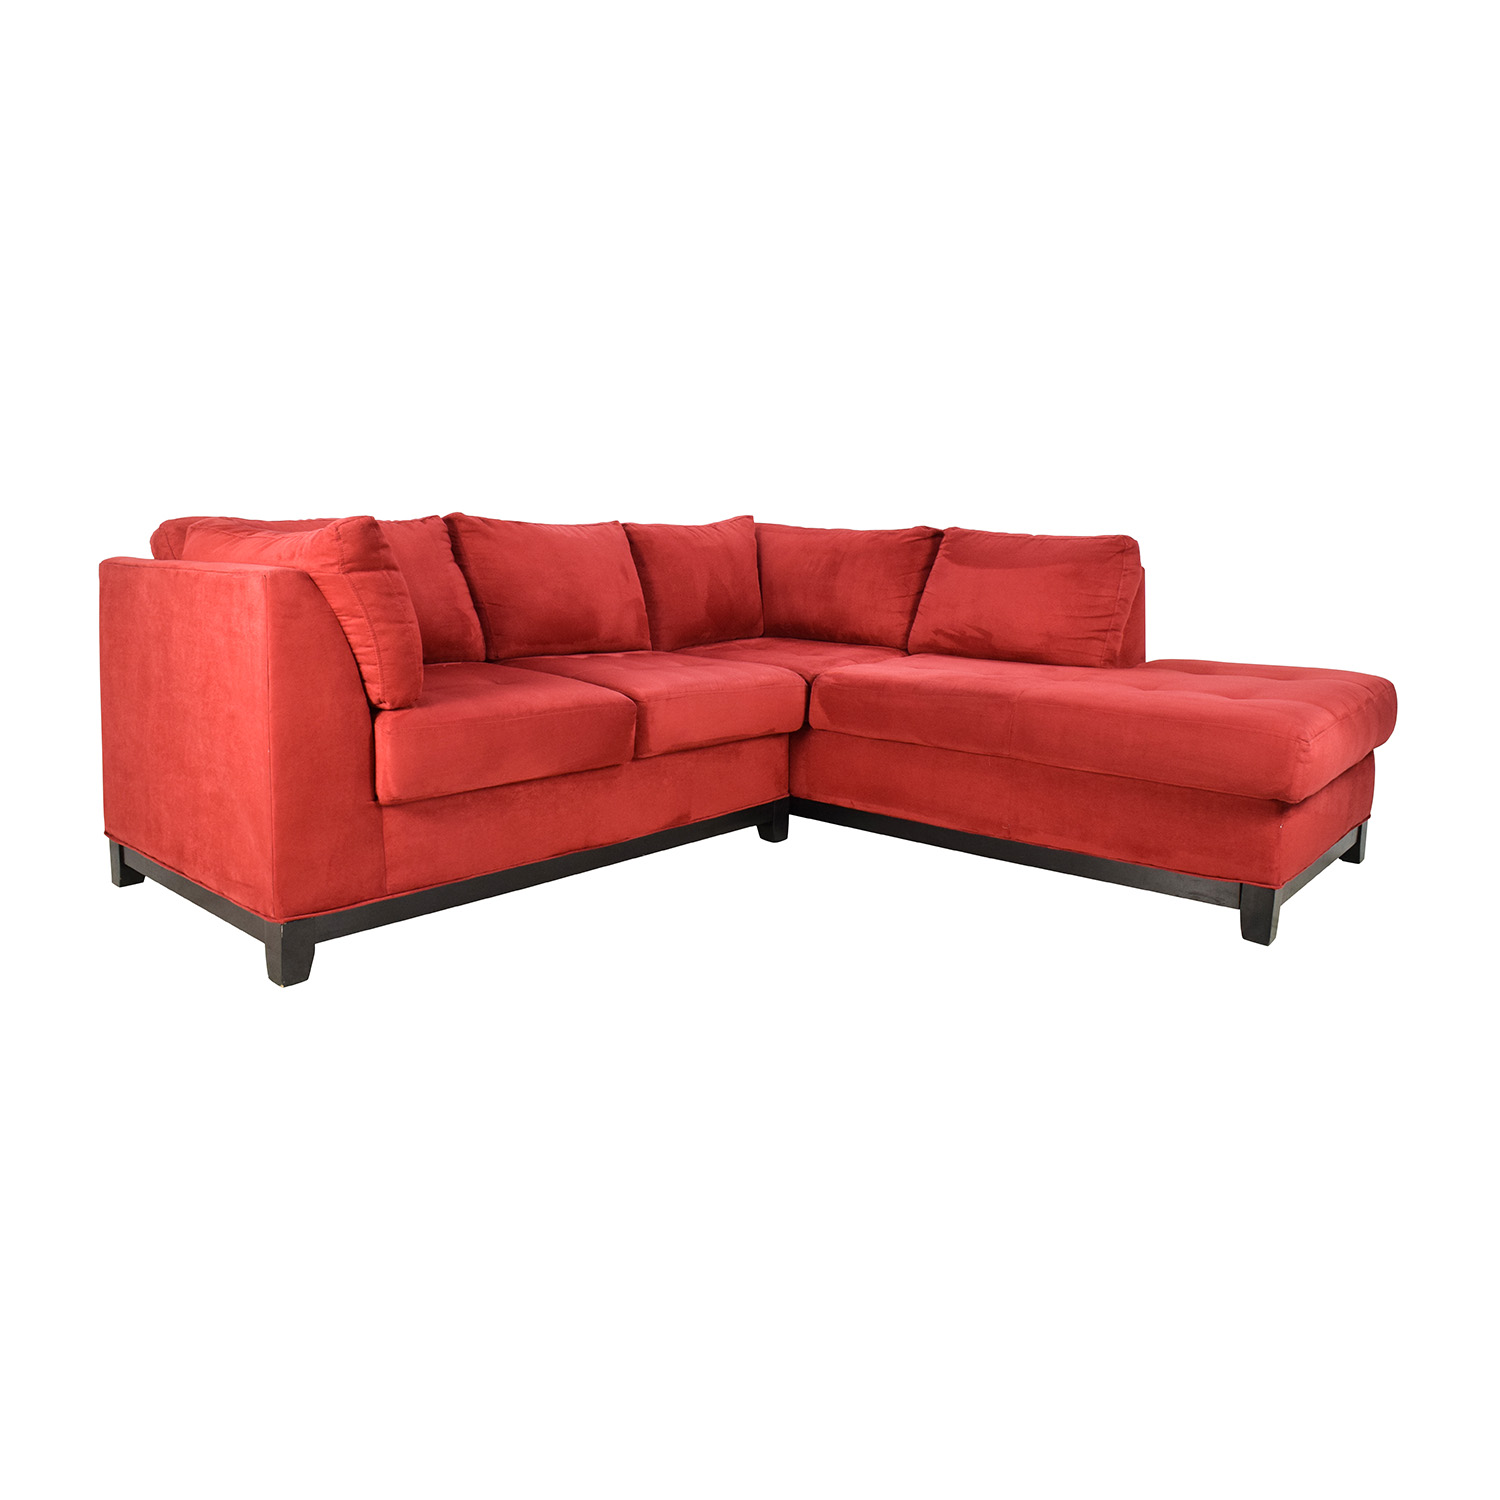 raymour and flanigan sectional sofas large corner fabric 67 off zella